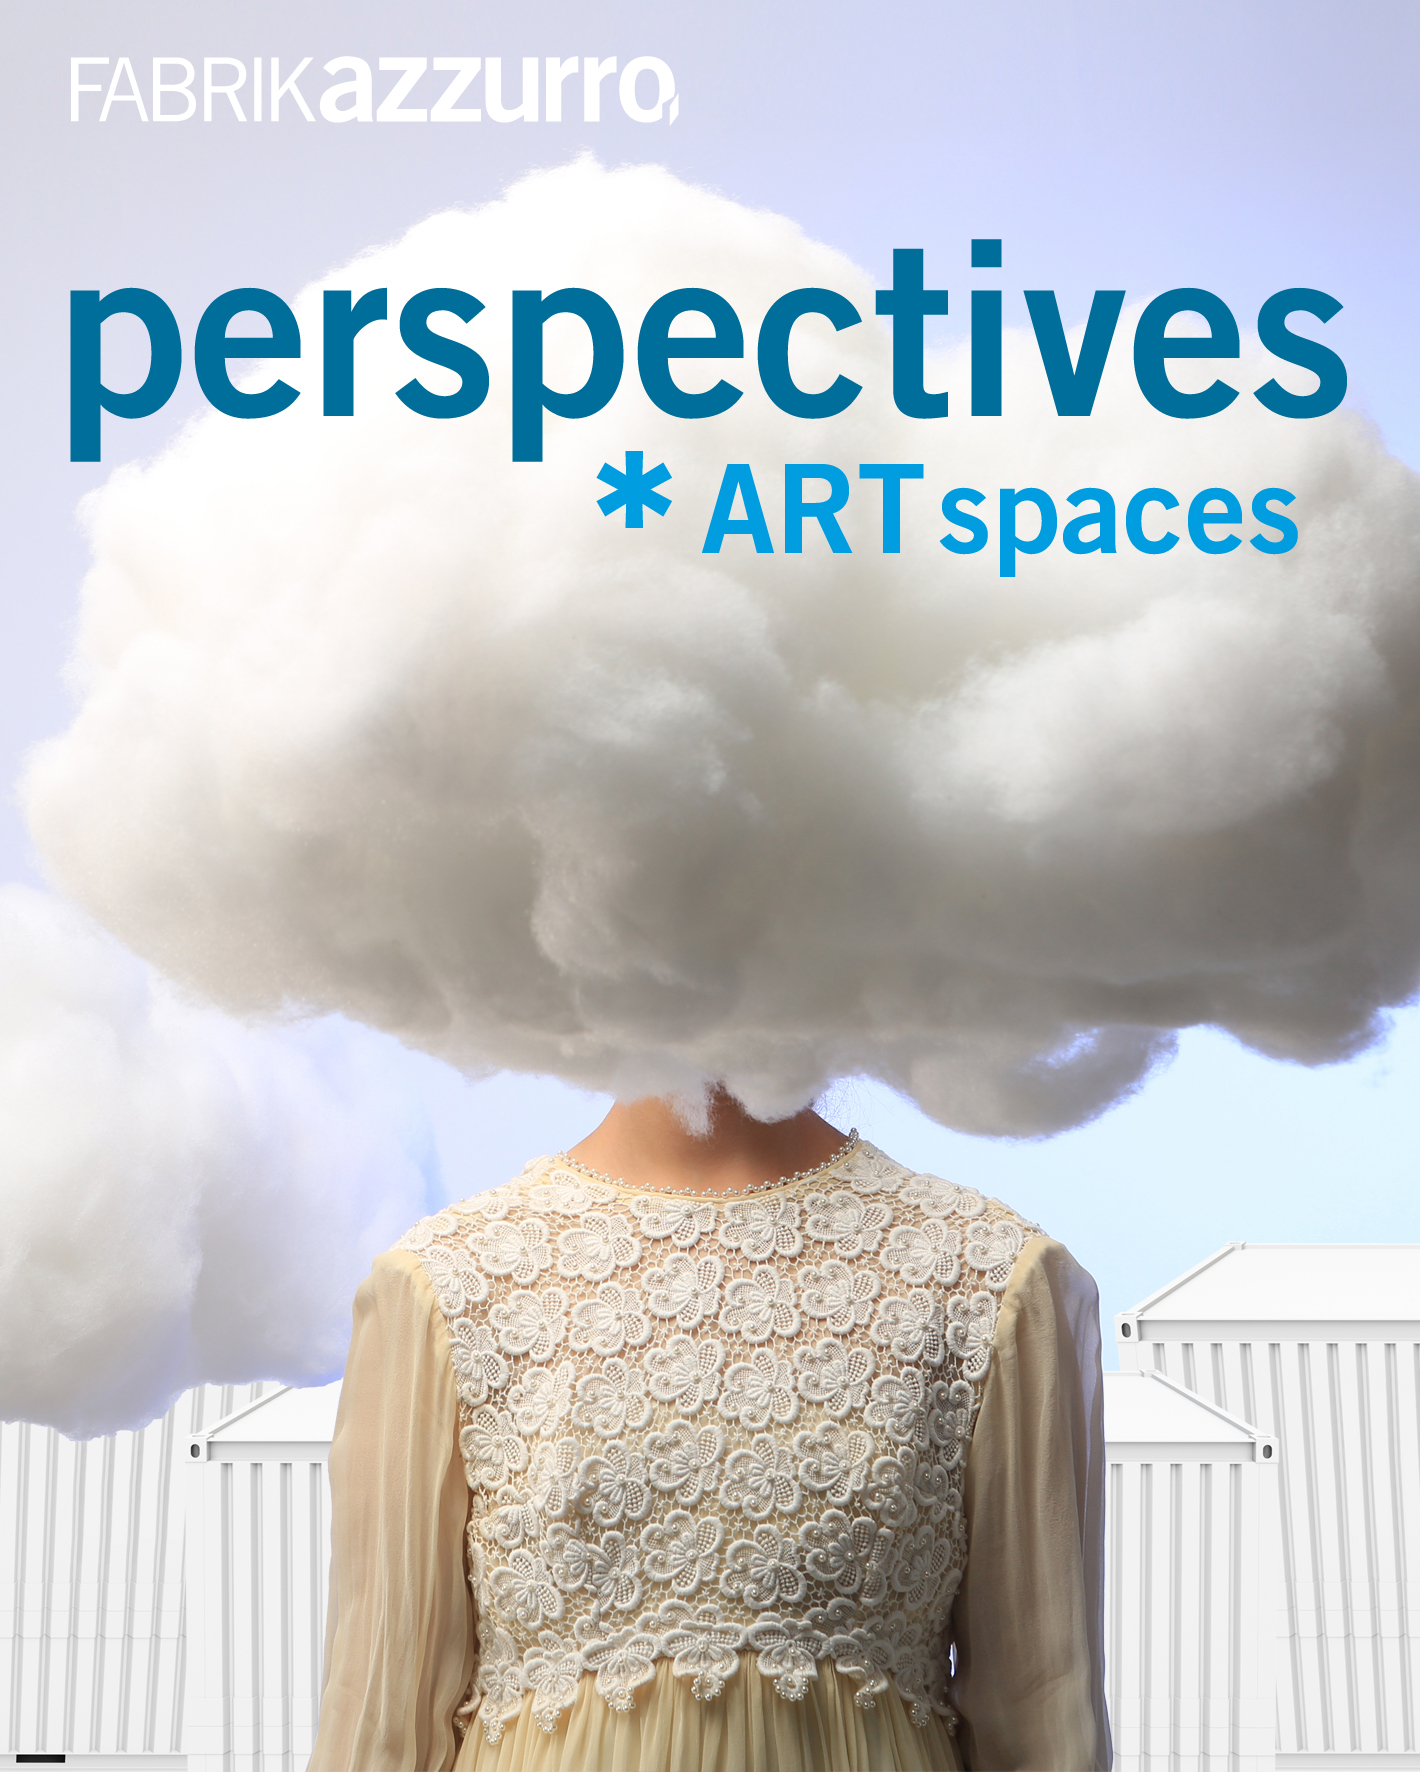 Perspectives * Art spaces